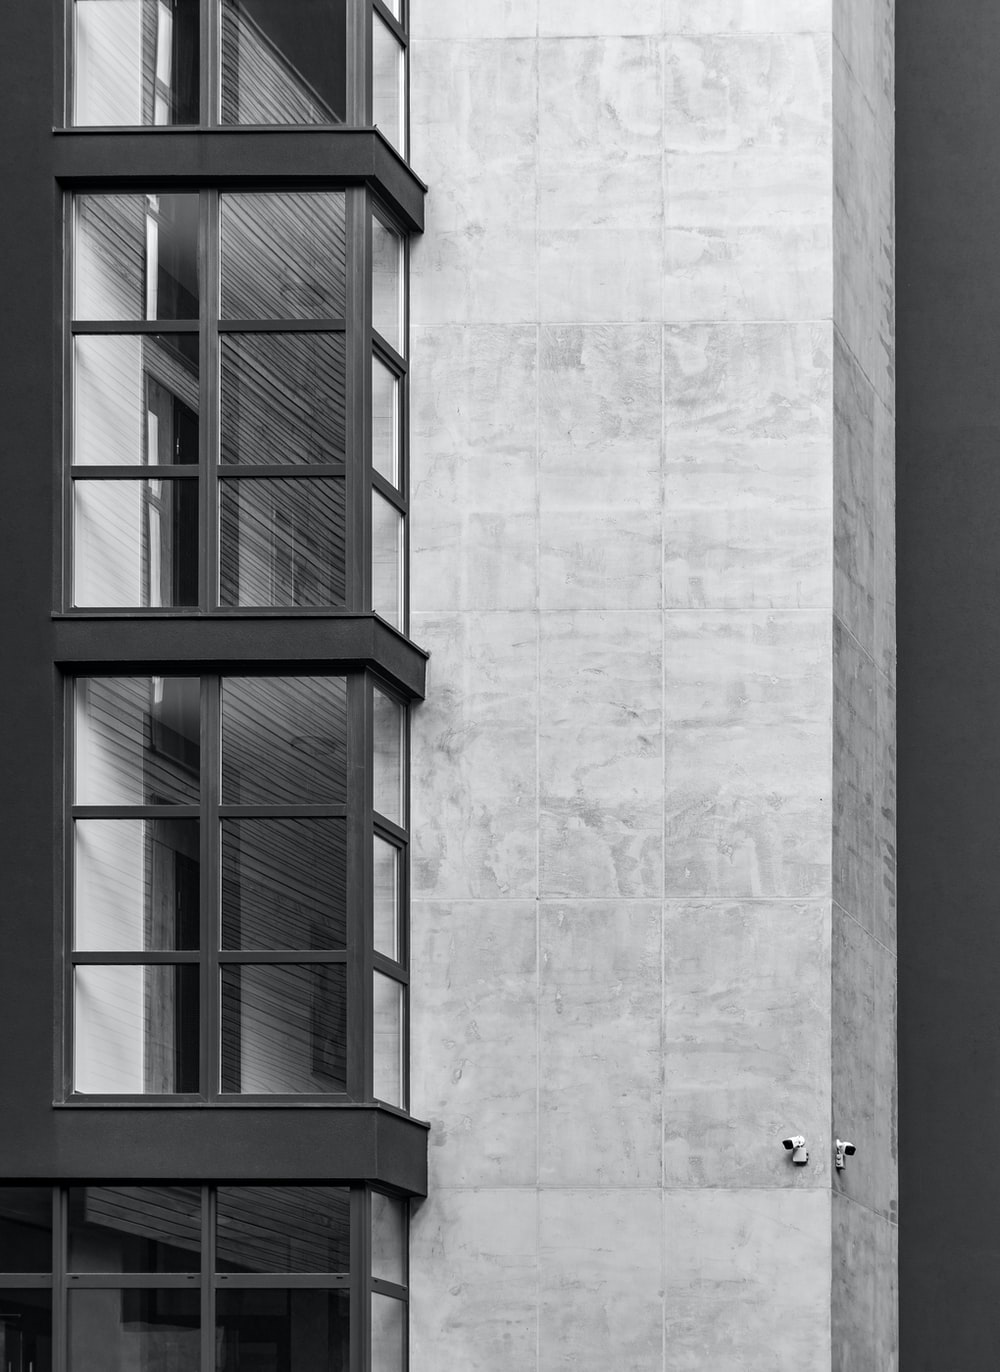 gray concrete building with glass window